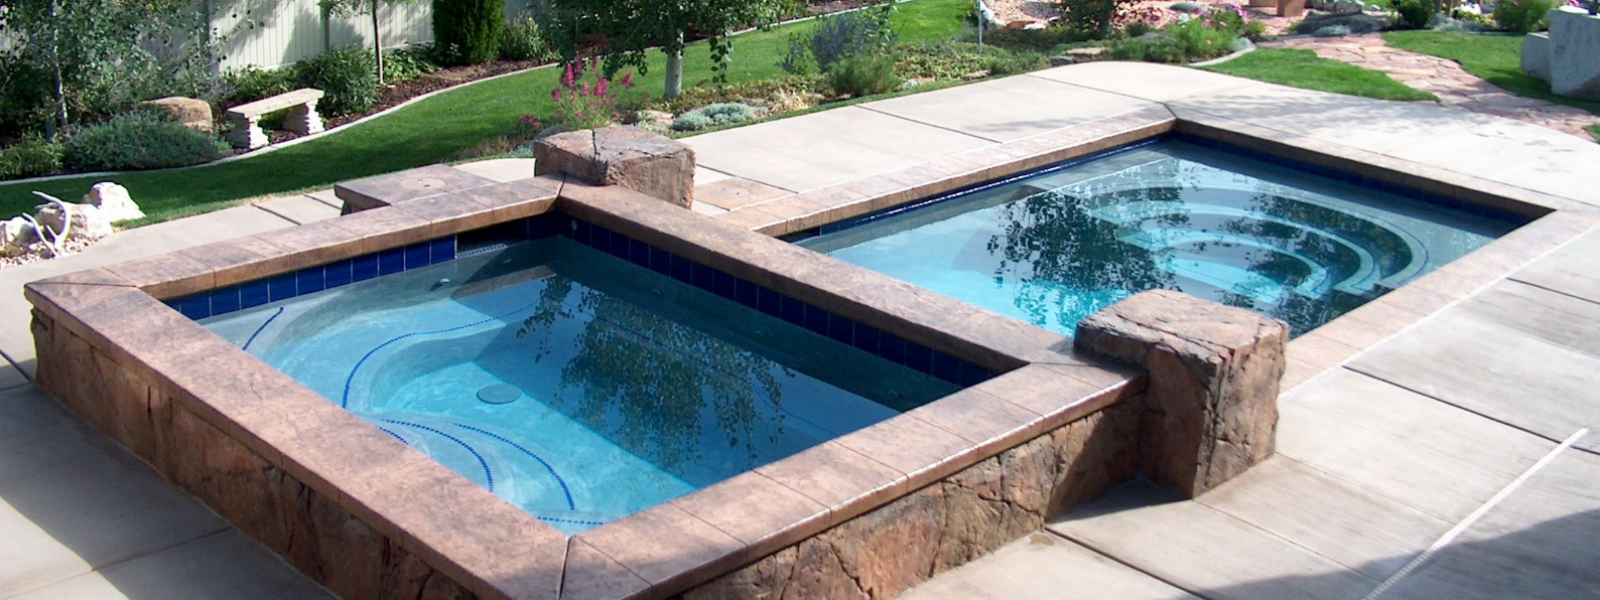 Swimming Pools Spas Hot Tubs Utah Crystal Utah